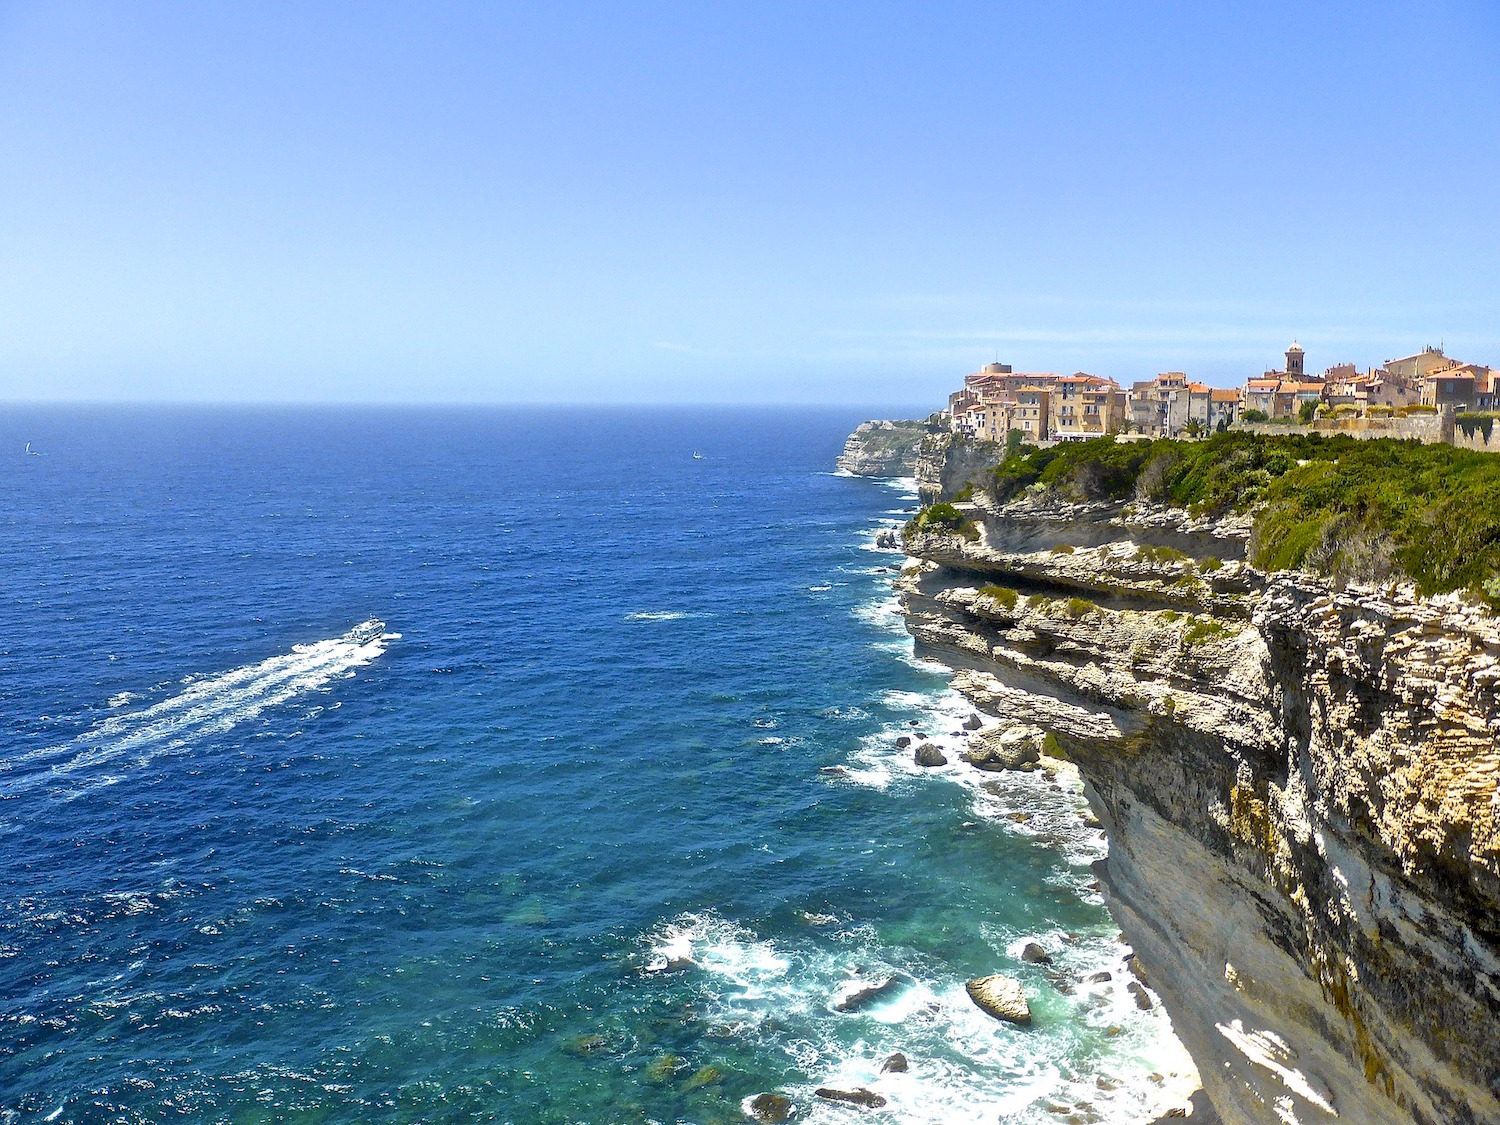 Corsica - View of Bonifacio on the clifftops of southern Corsica